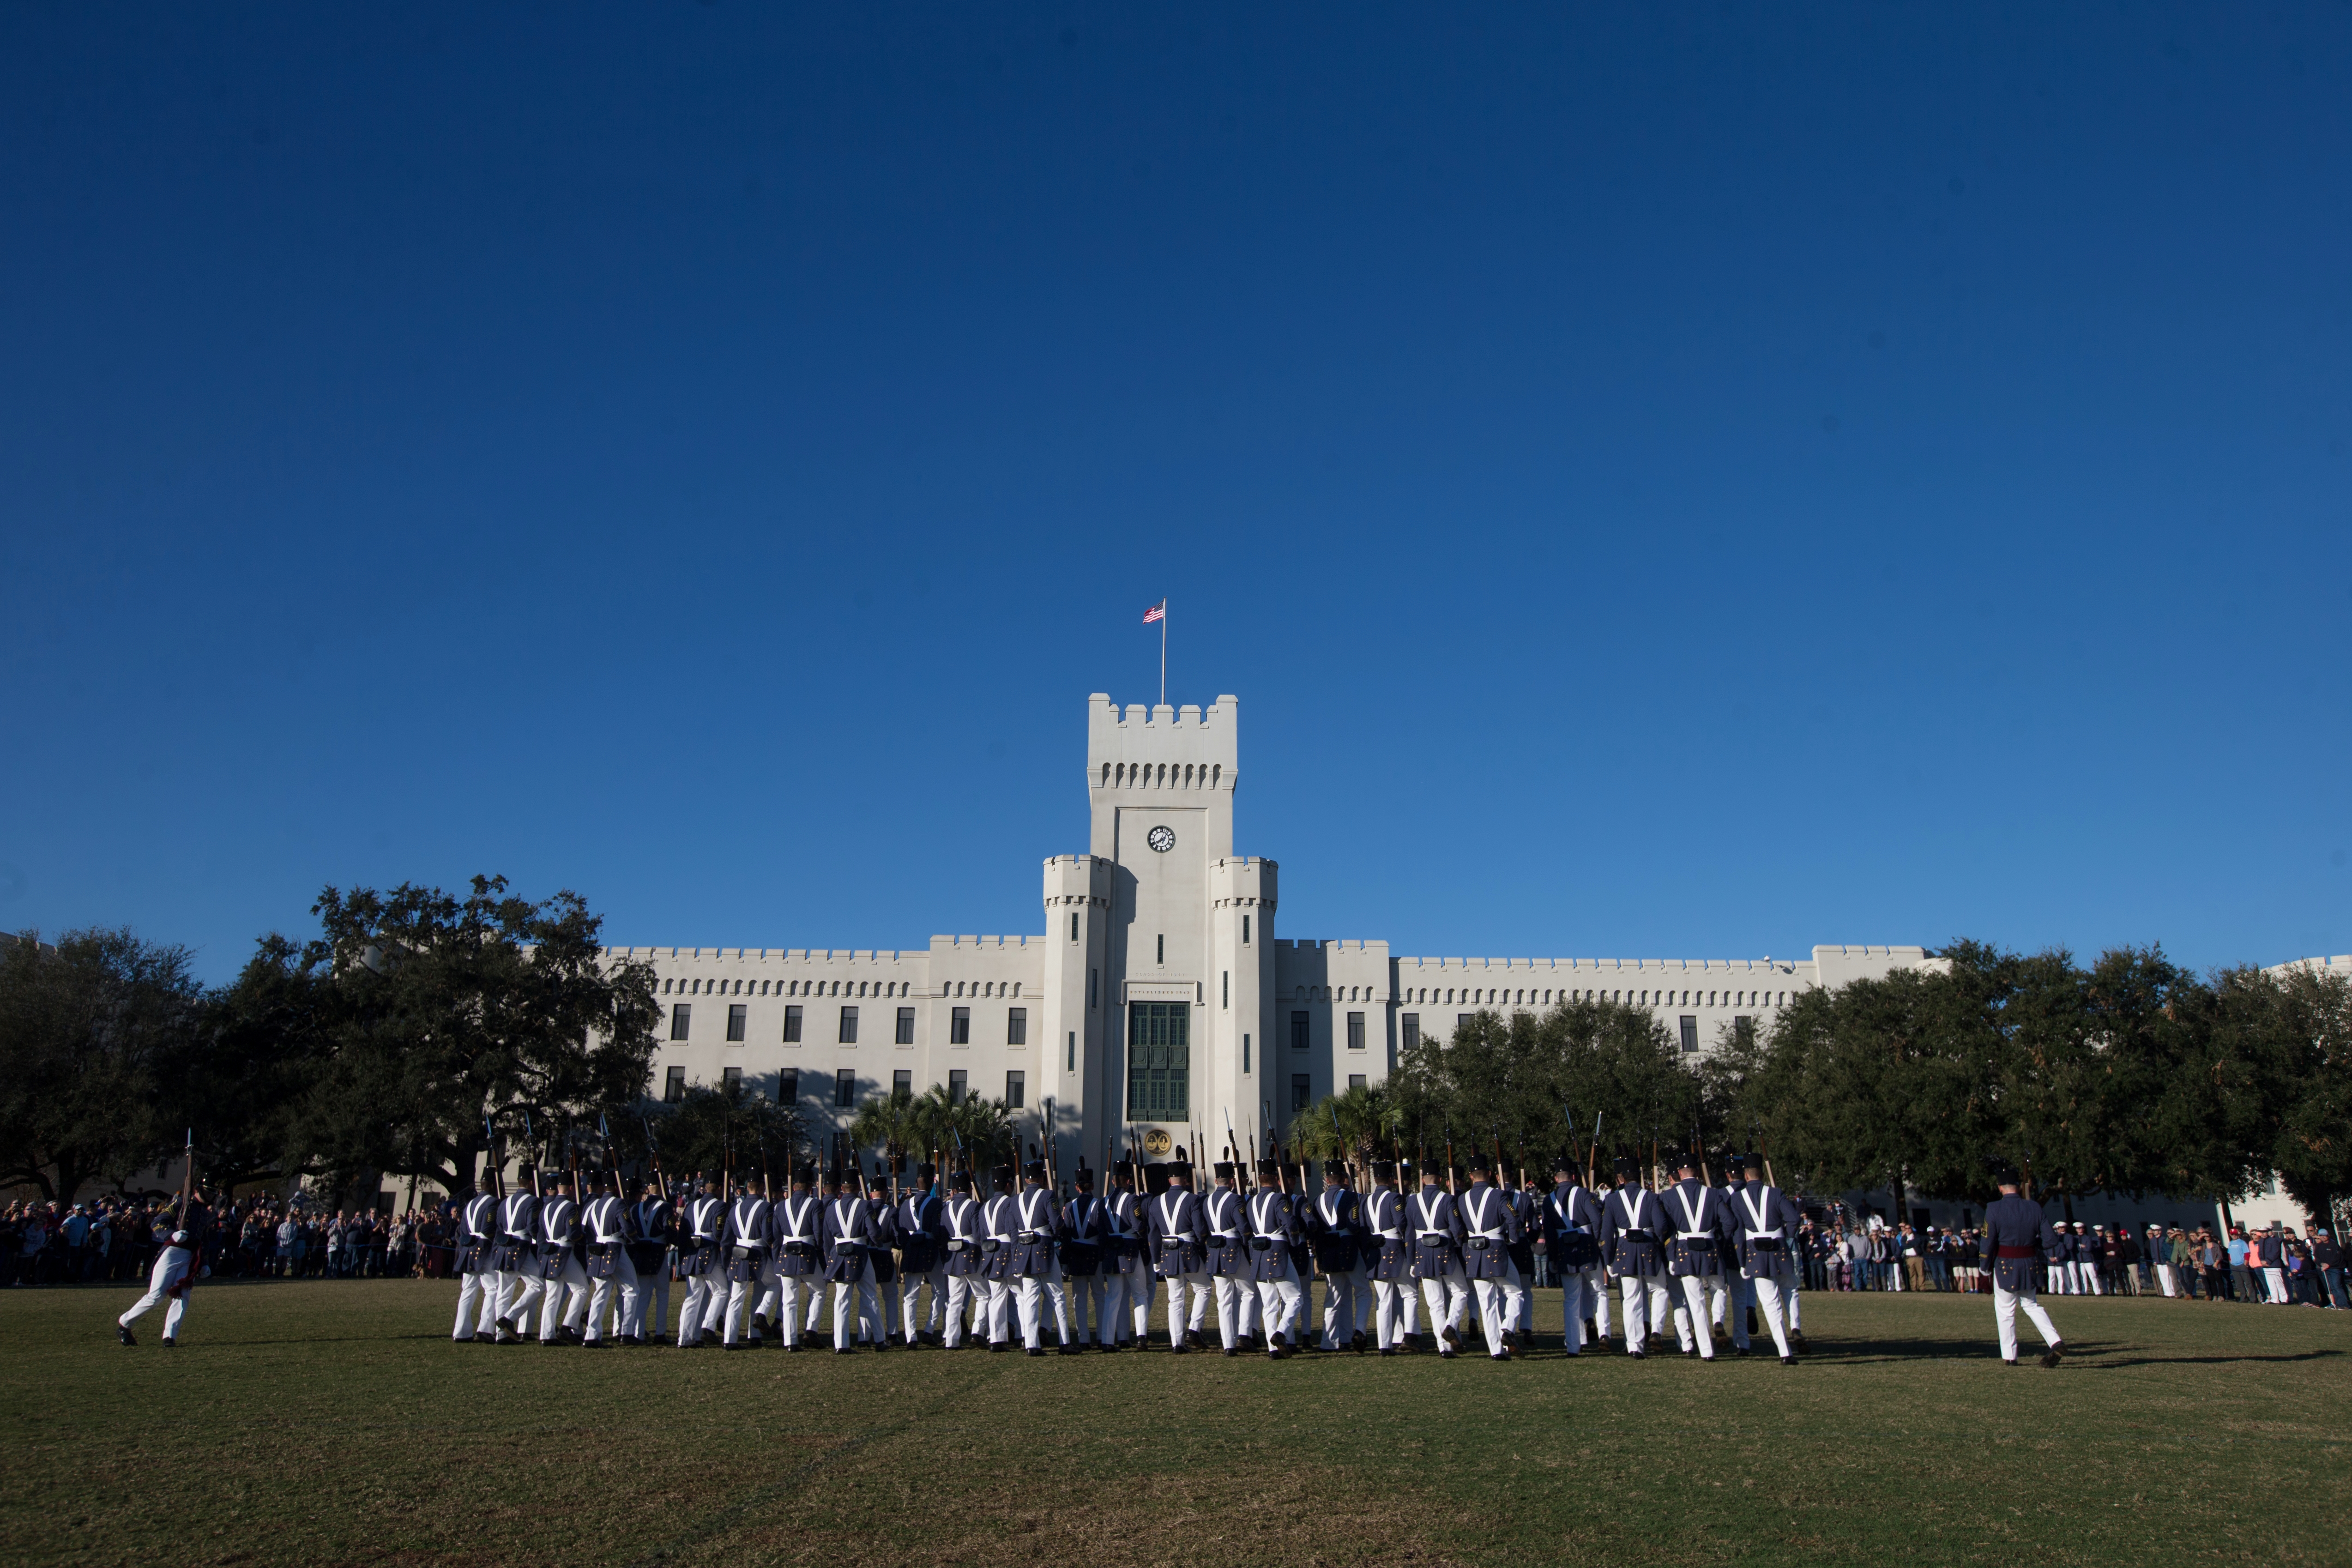 The Citadel Summerall Guard